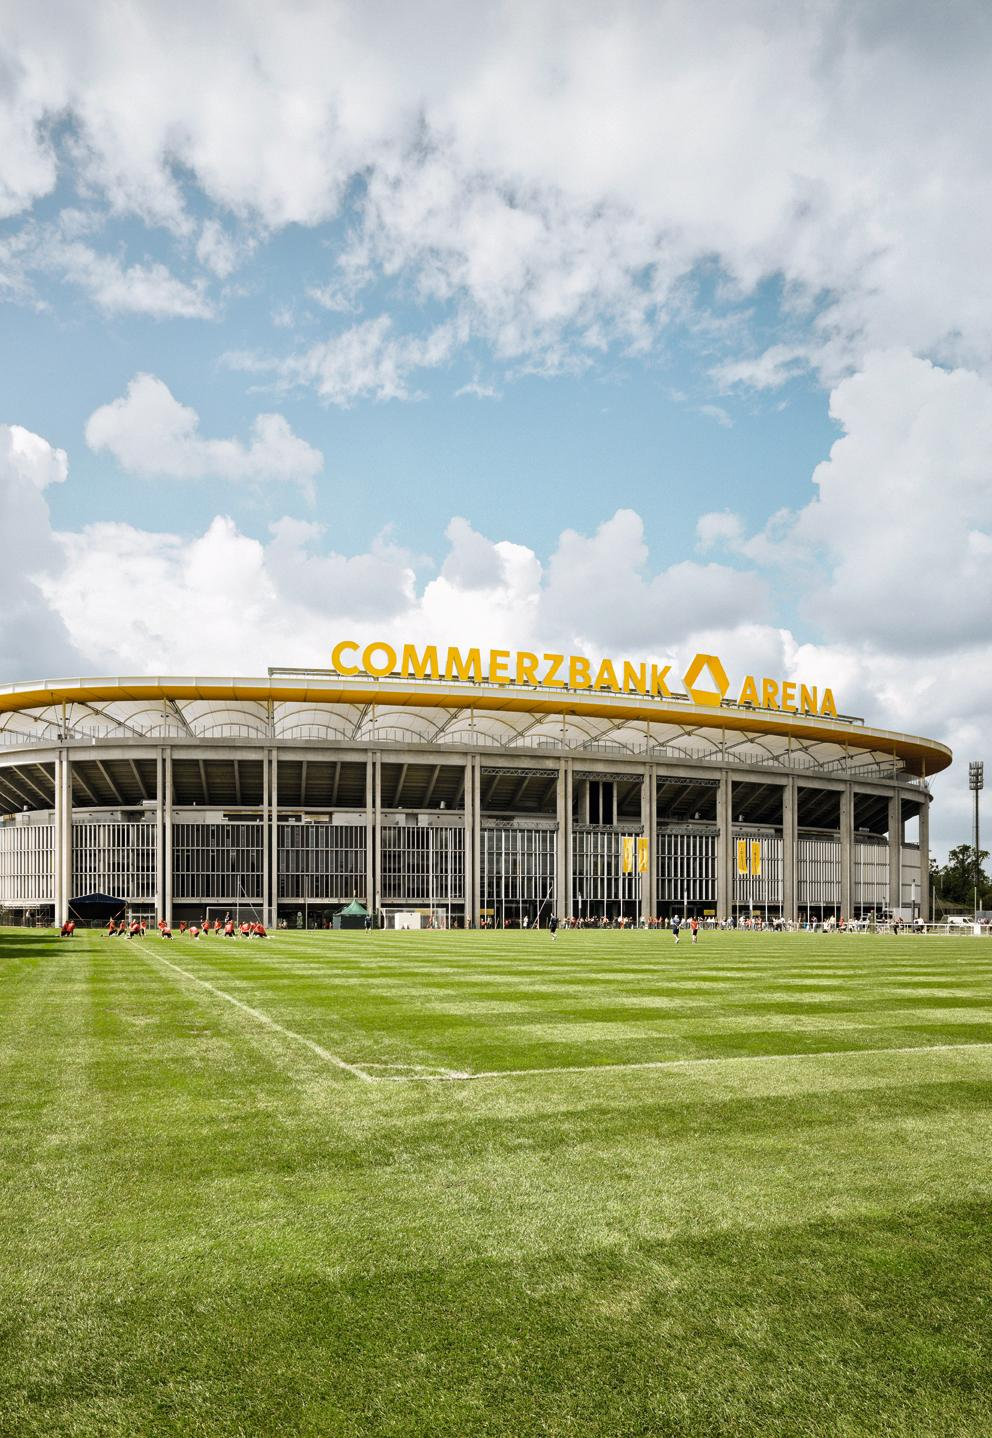 Venue Commerzbank Arena - Frankfurt, Germany The Commerzbank Arena is the home ground of Bundesliga team Eintracht Frankfurt, and was a FIFA World Cup Stadium in 2006 and 2011: Football capacity of